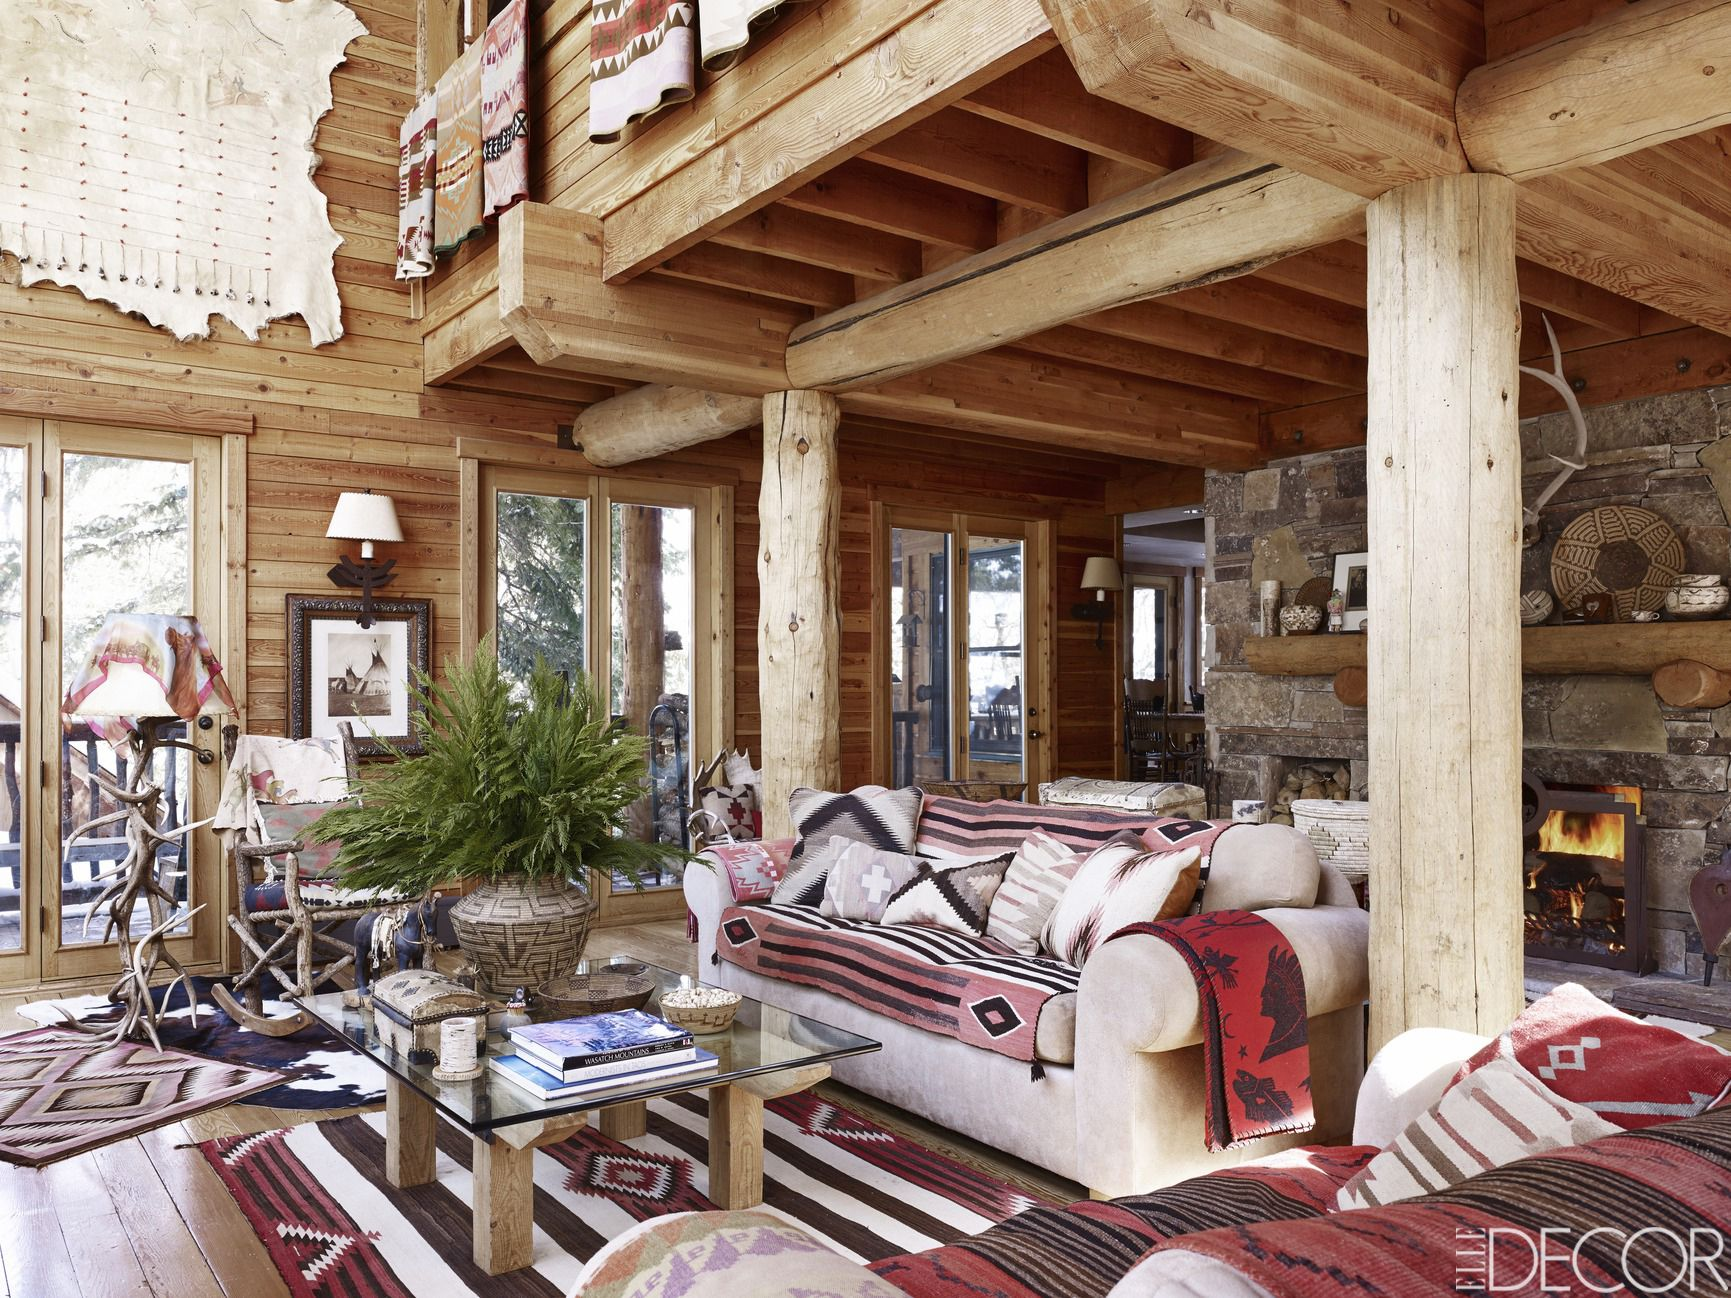 house tour from the mountains to the beach a fashion execs two getaways stun - Ralph Lauren Decorating Style